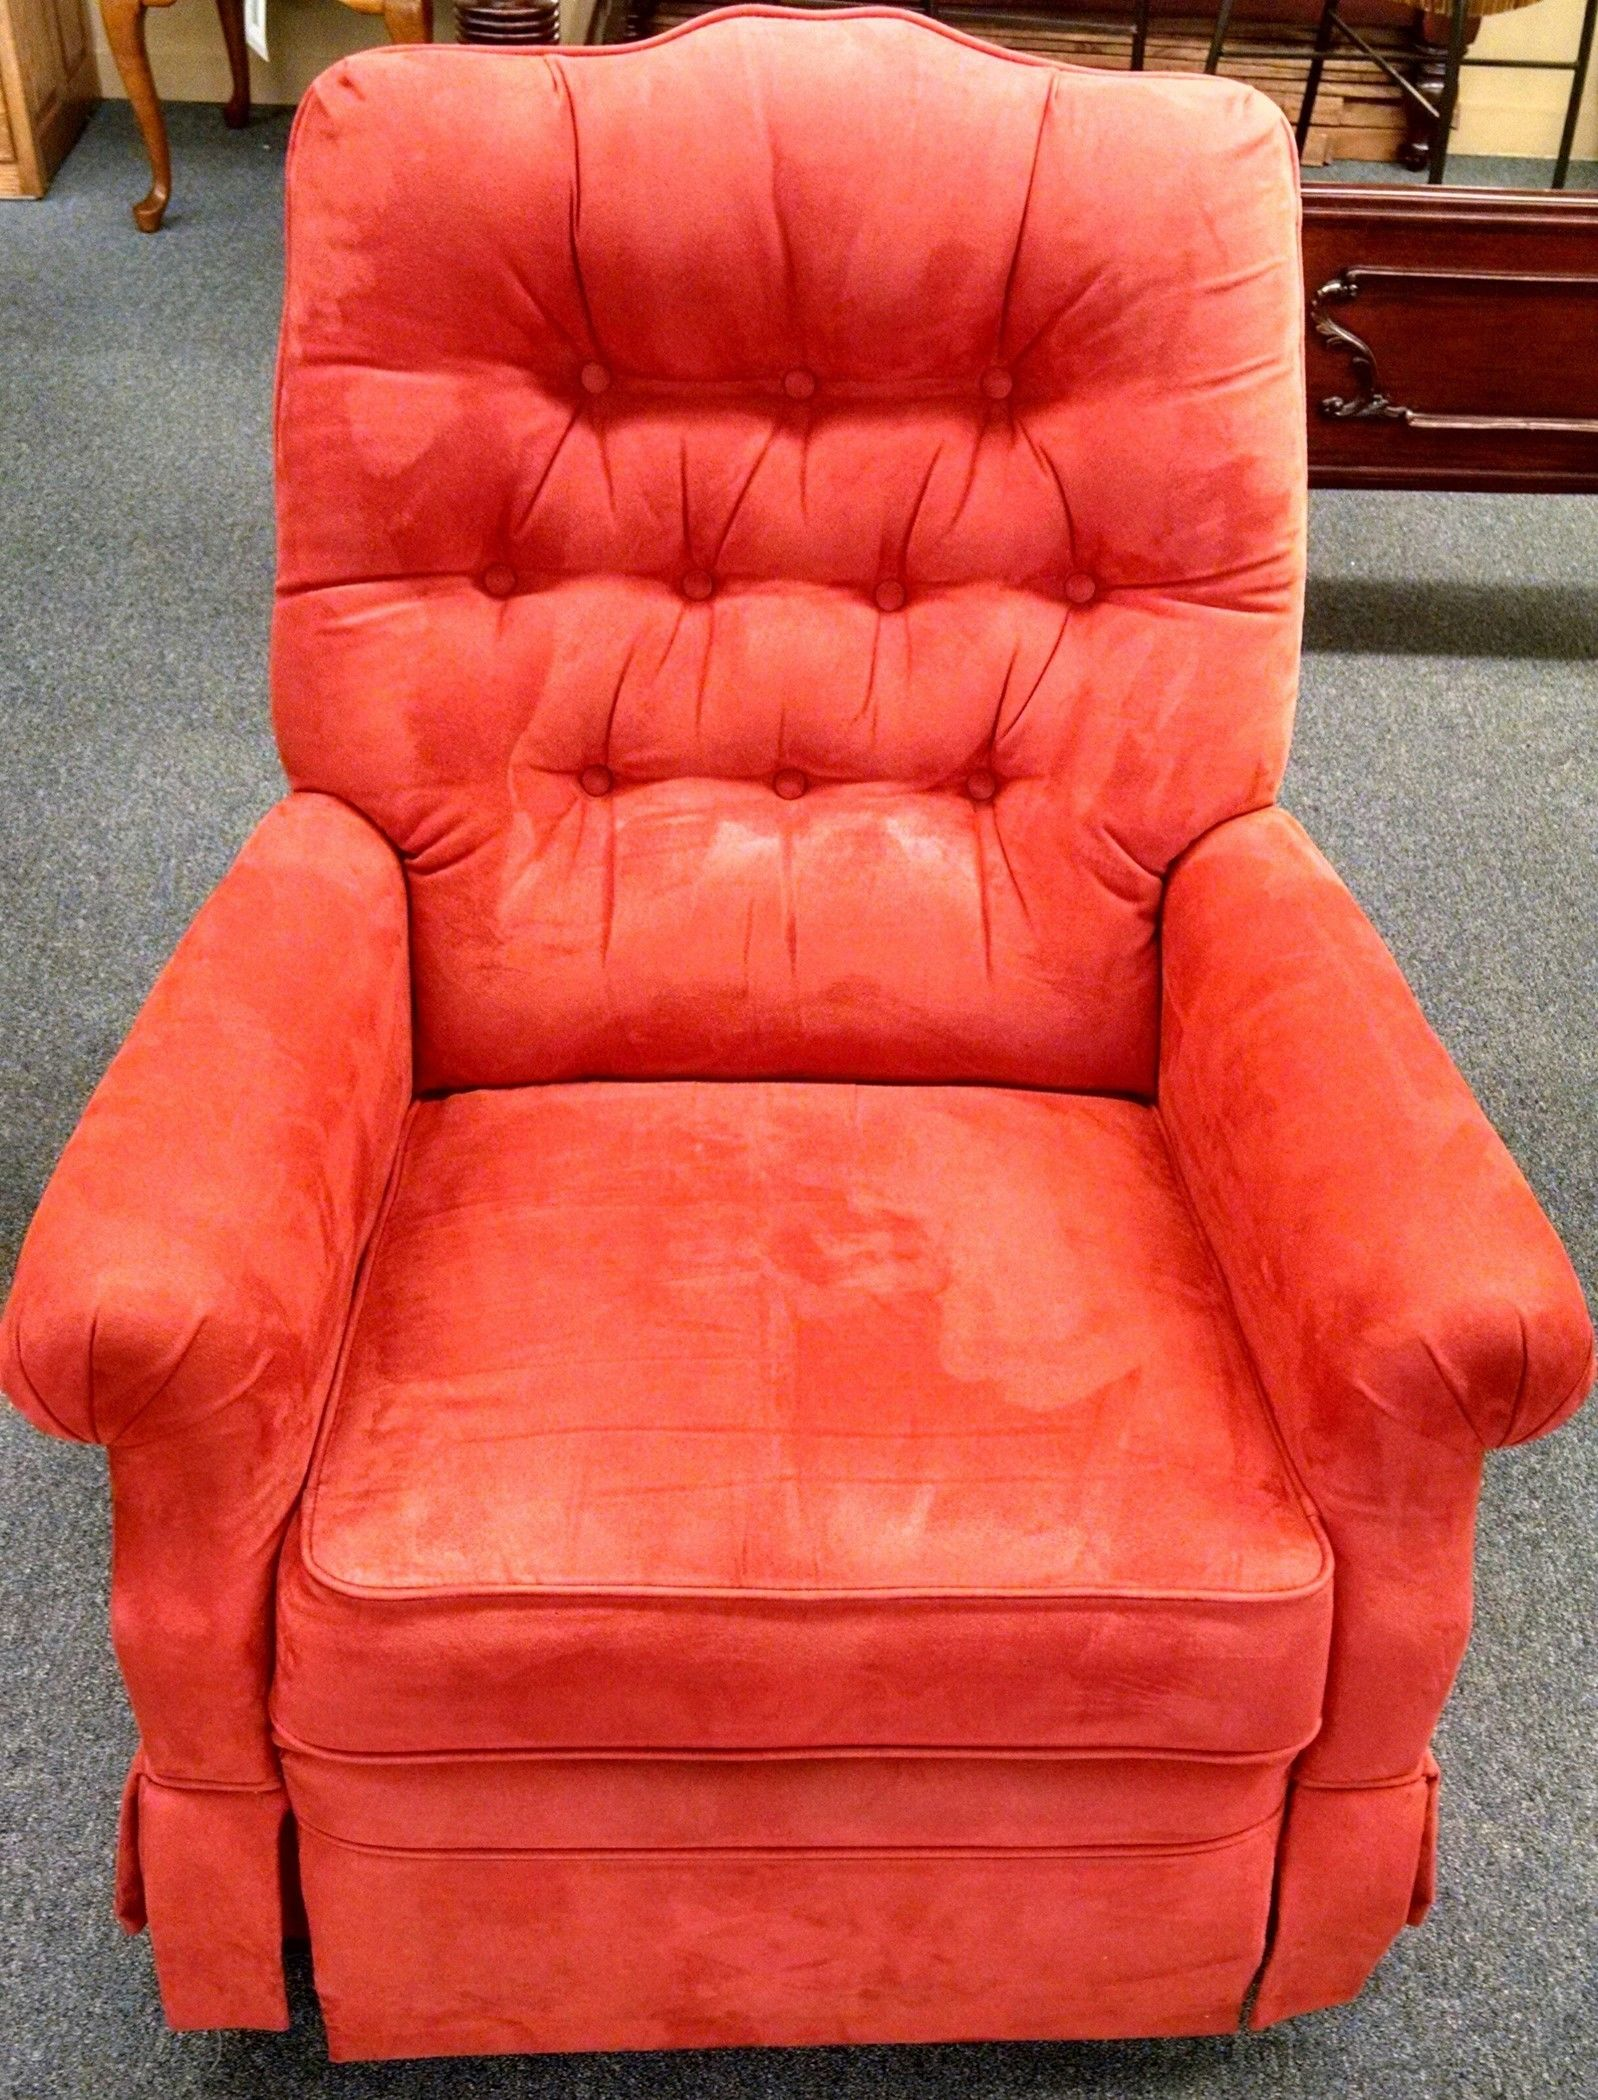 Lazyboy Coral Recliner Delmarva Furniture Consignment